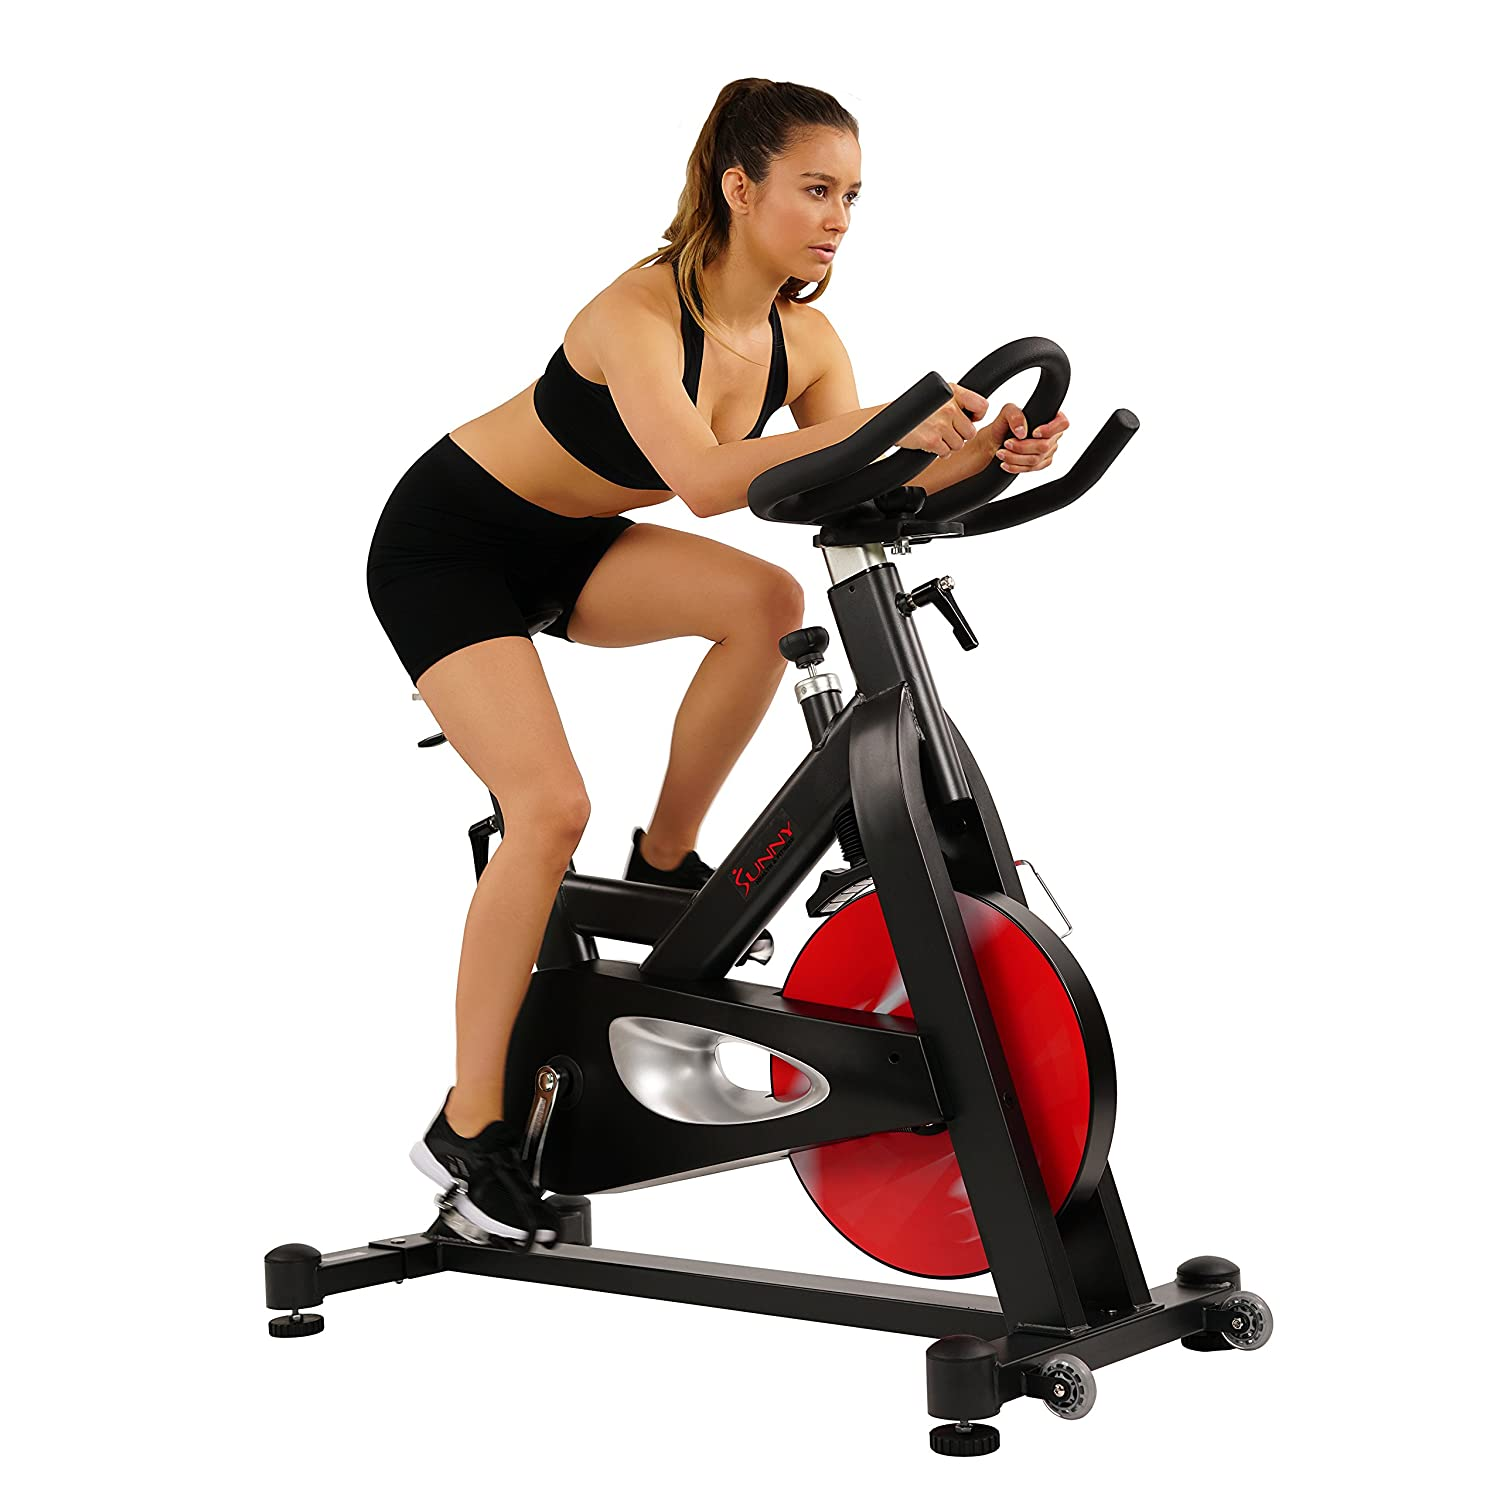 Health & Fitness Evolution Pro Magnetic Belt Drive Indoor Cycling Bike, High Weight Capacity, Heavy Duty Flywheel